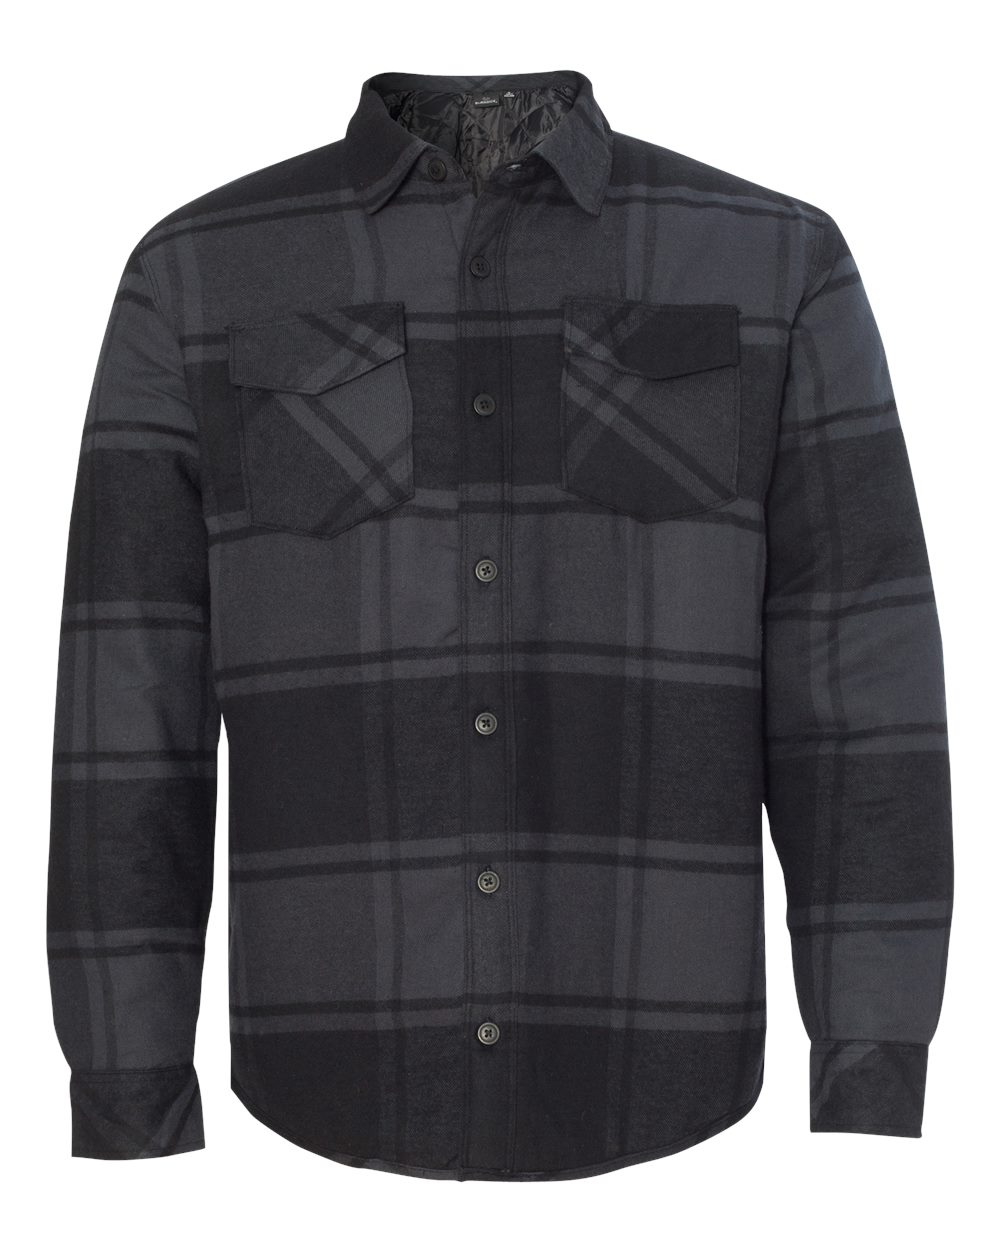 Burnside-Mens-Quilted-Flannel-Jacket-Shirt-8610-up-to-3XL thumbnail 6